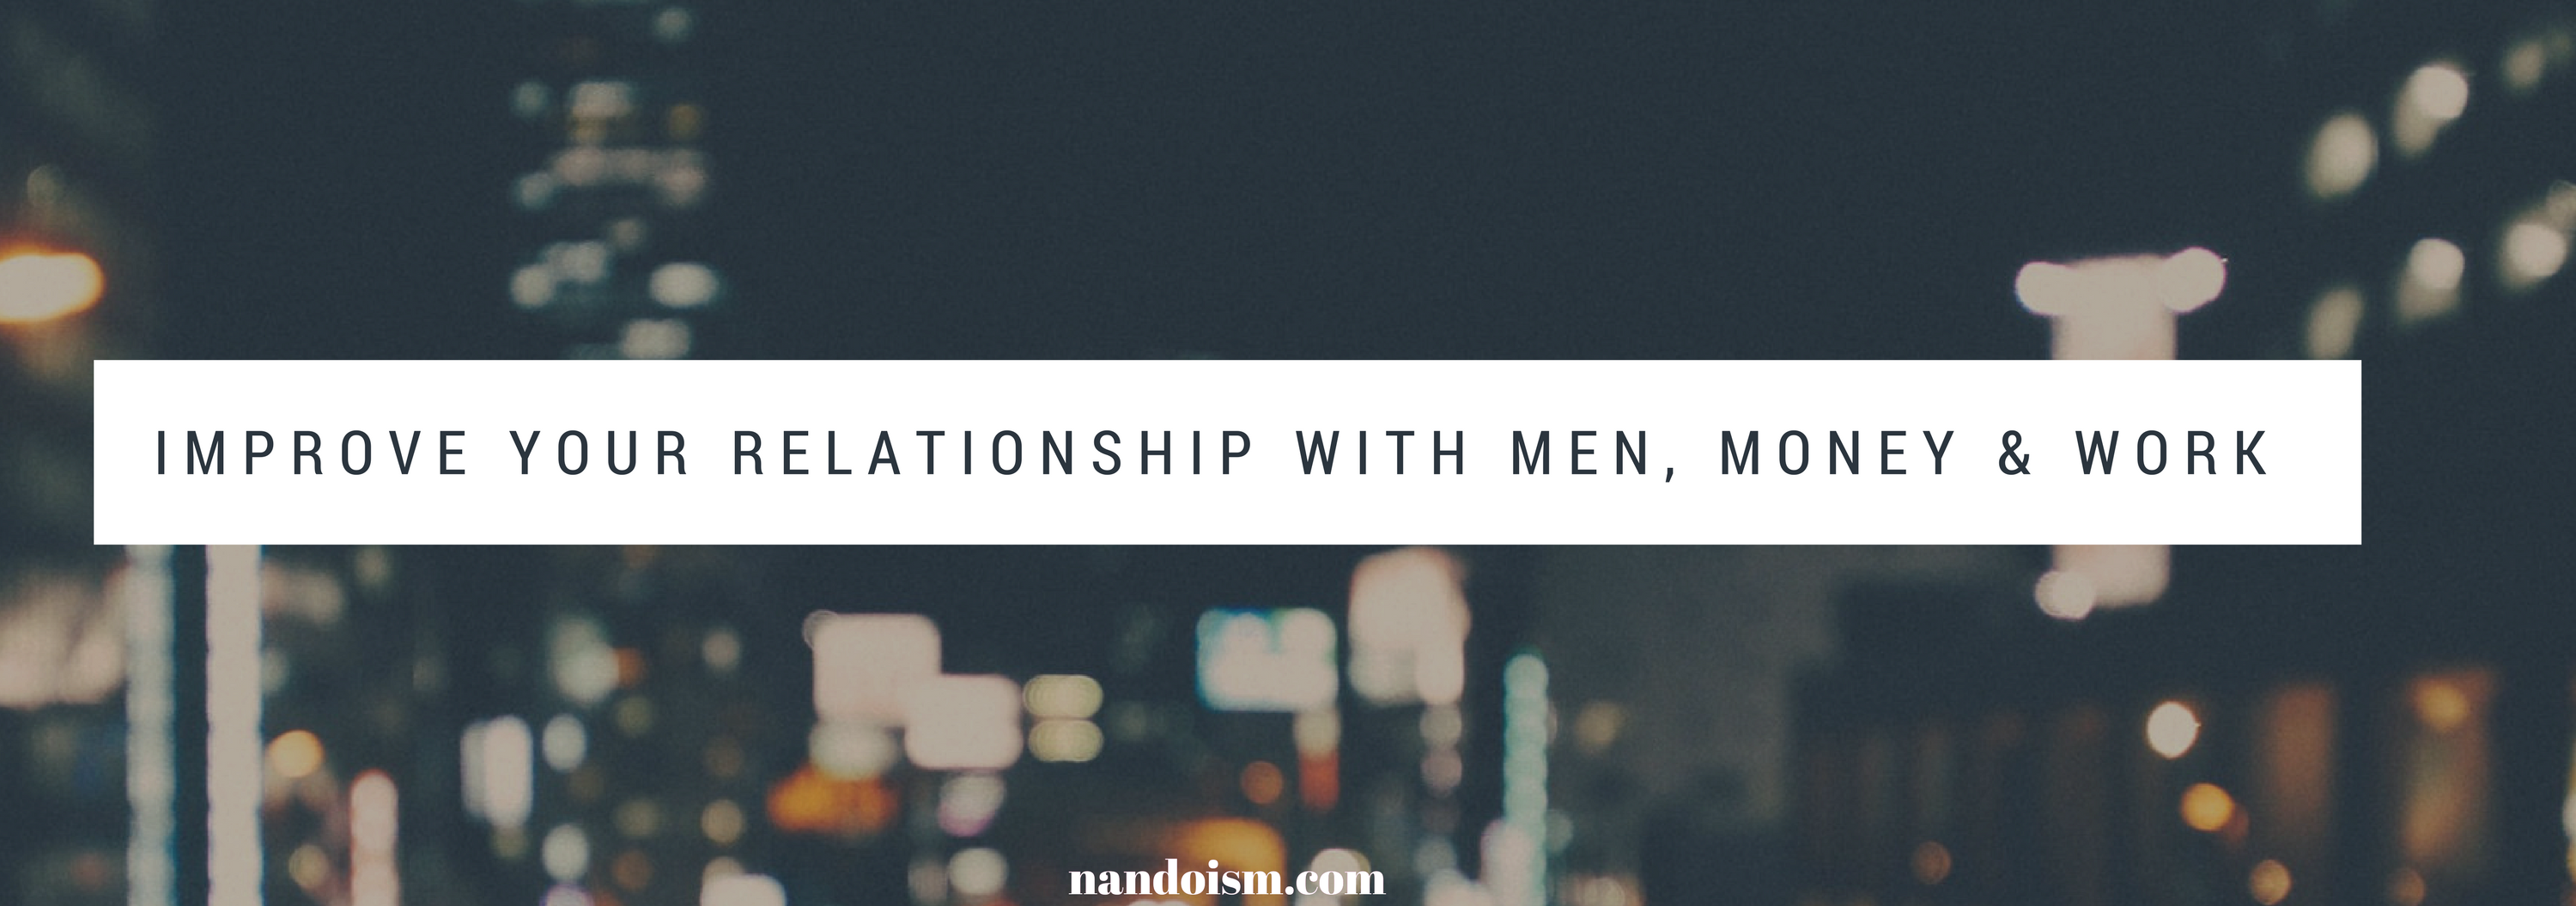 transformational coaching | relationship advice | dating tips | nandoism blogger| nando dating blogger